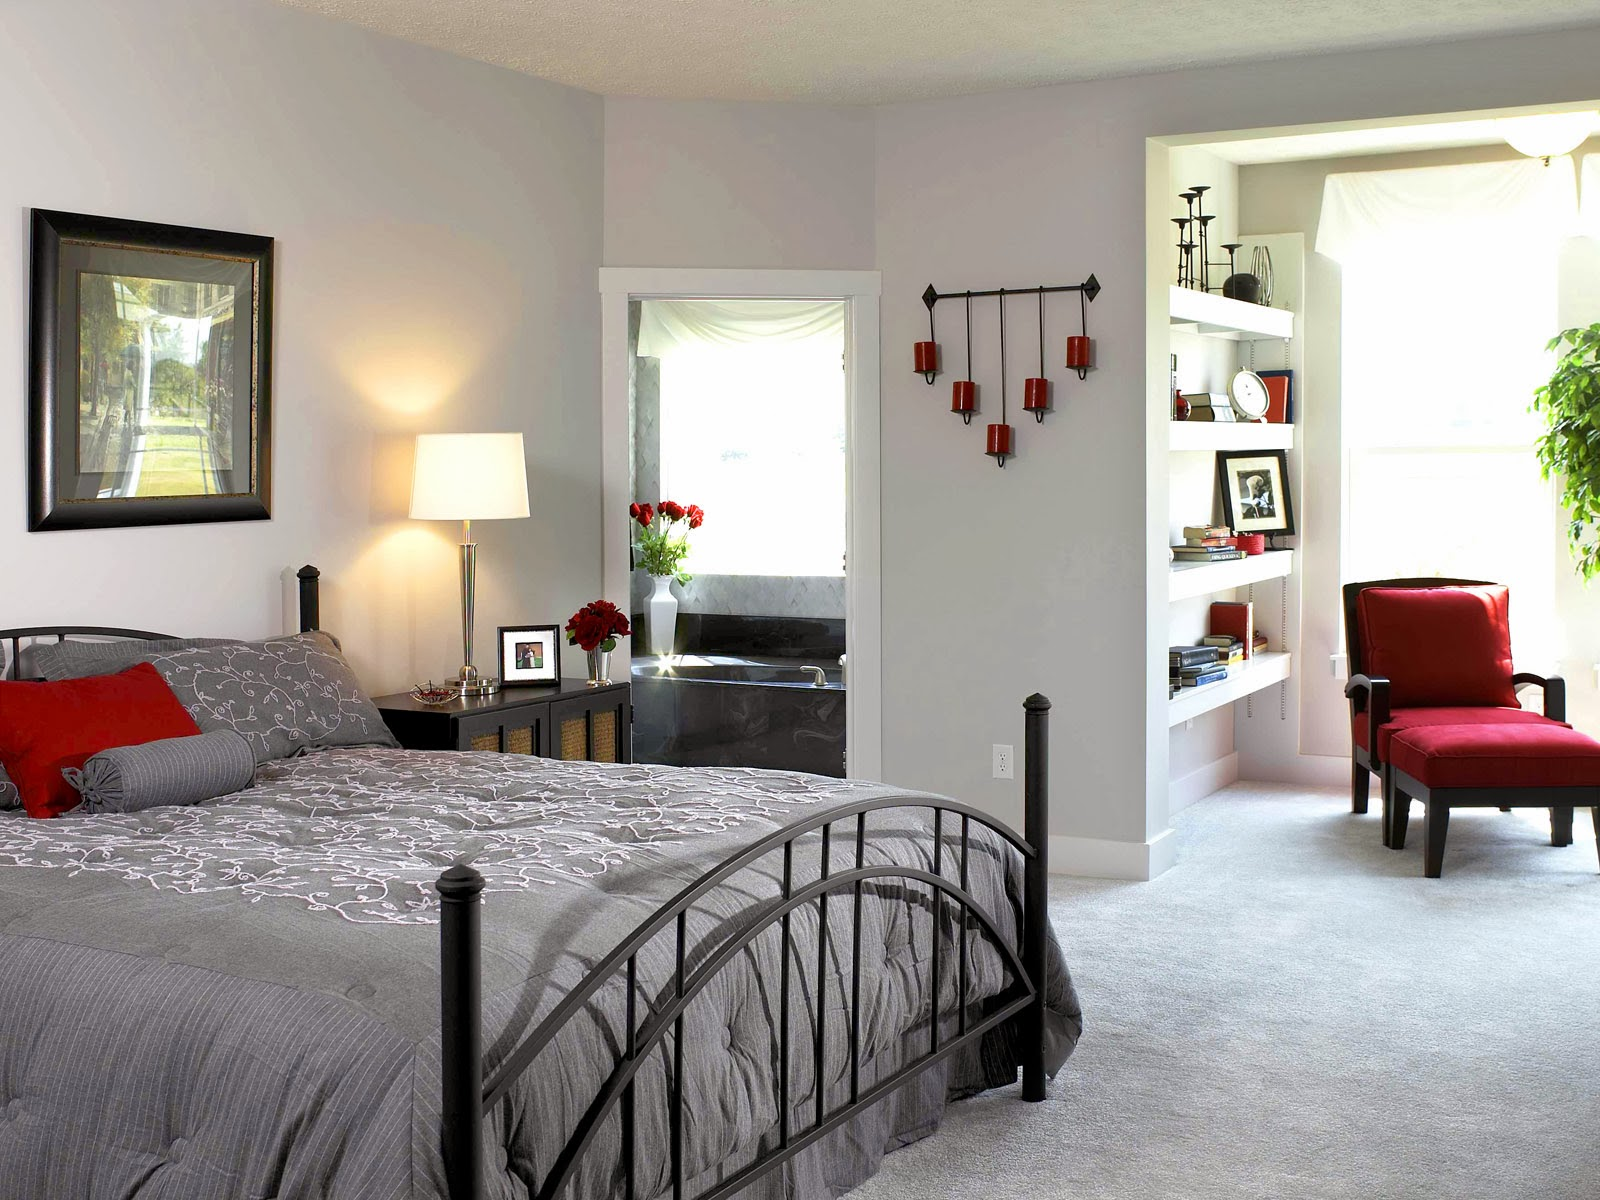 Bedroom Interior Designs